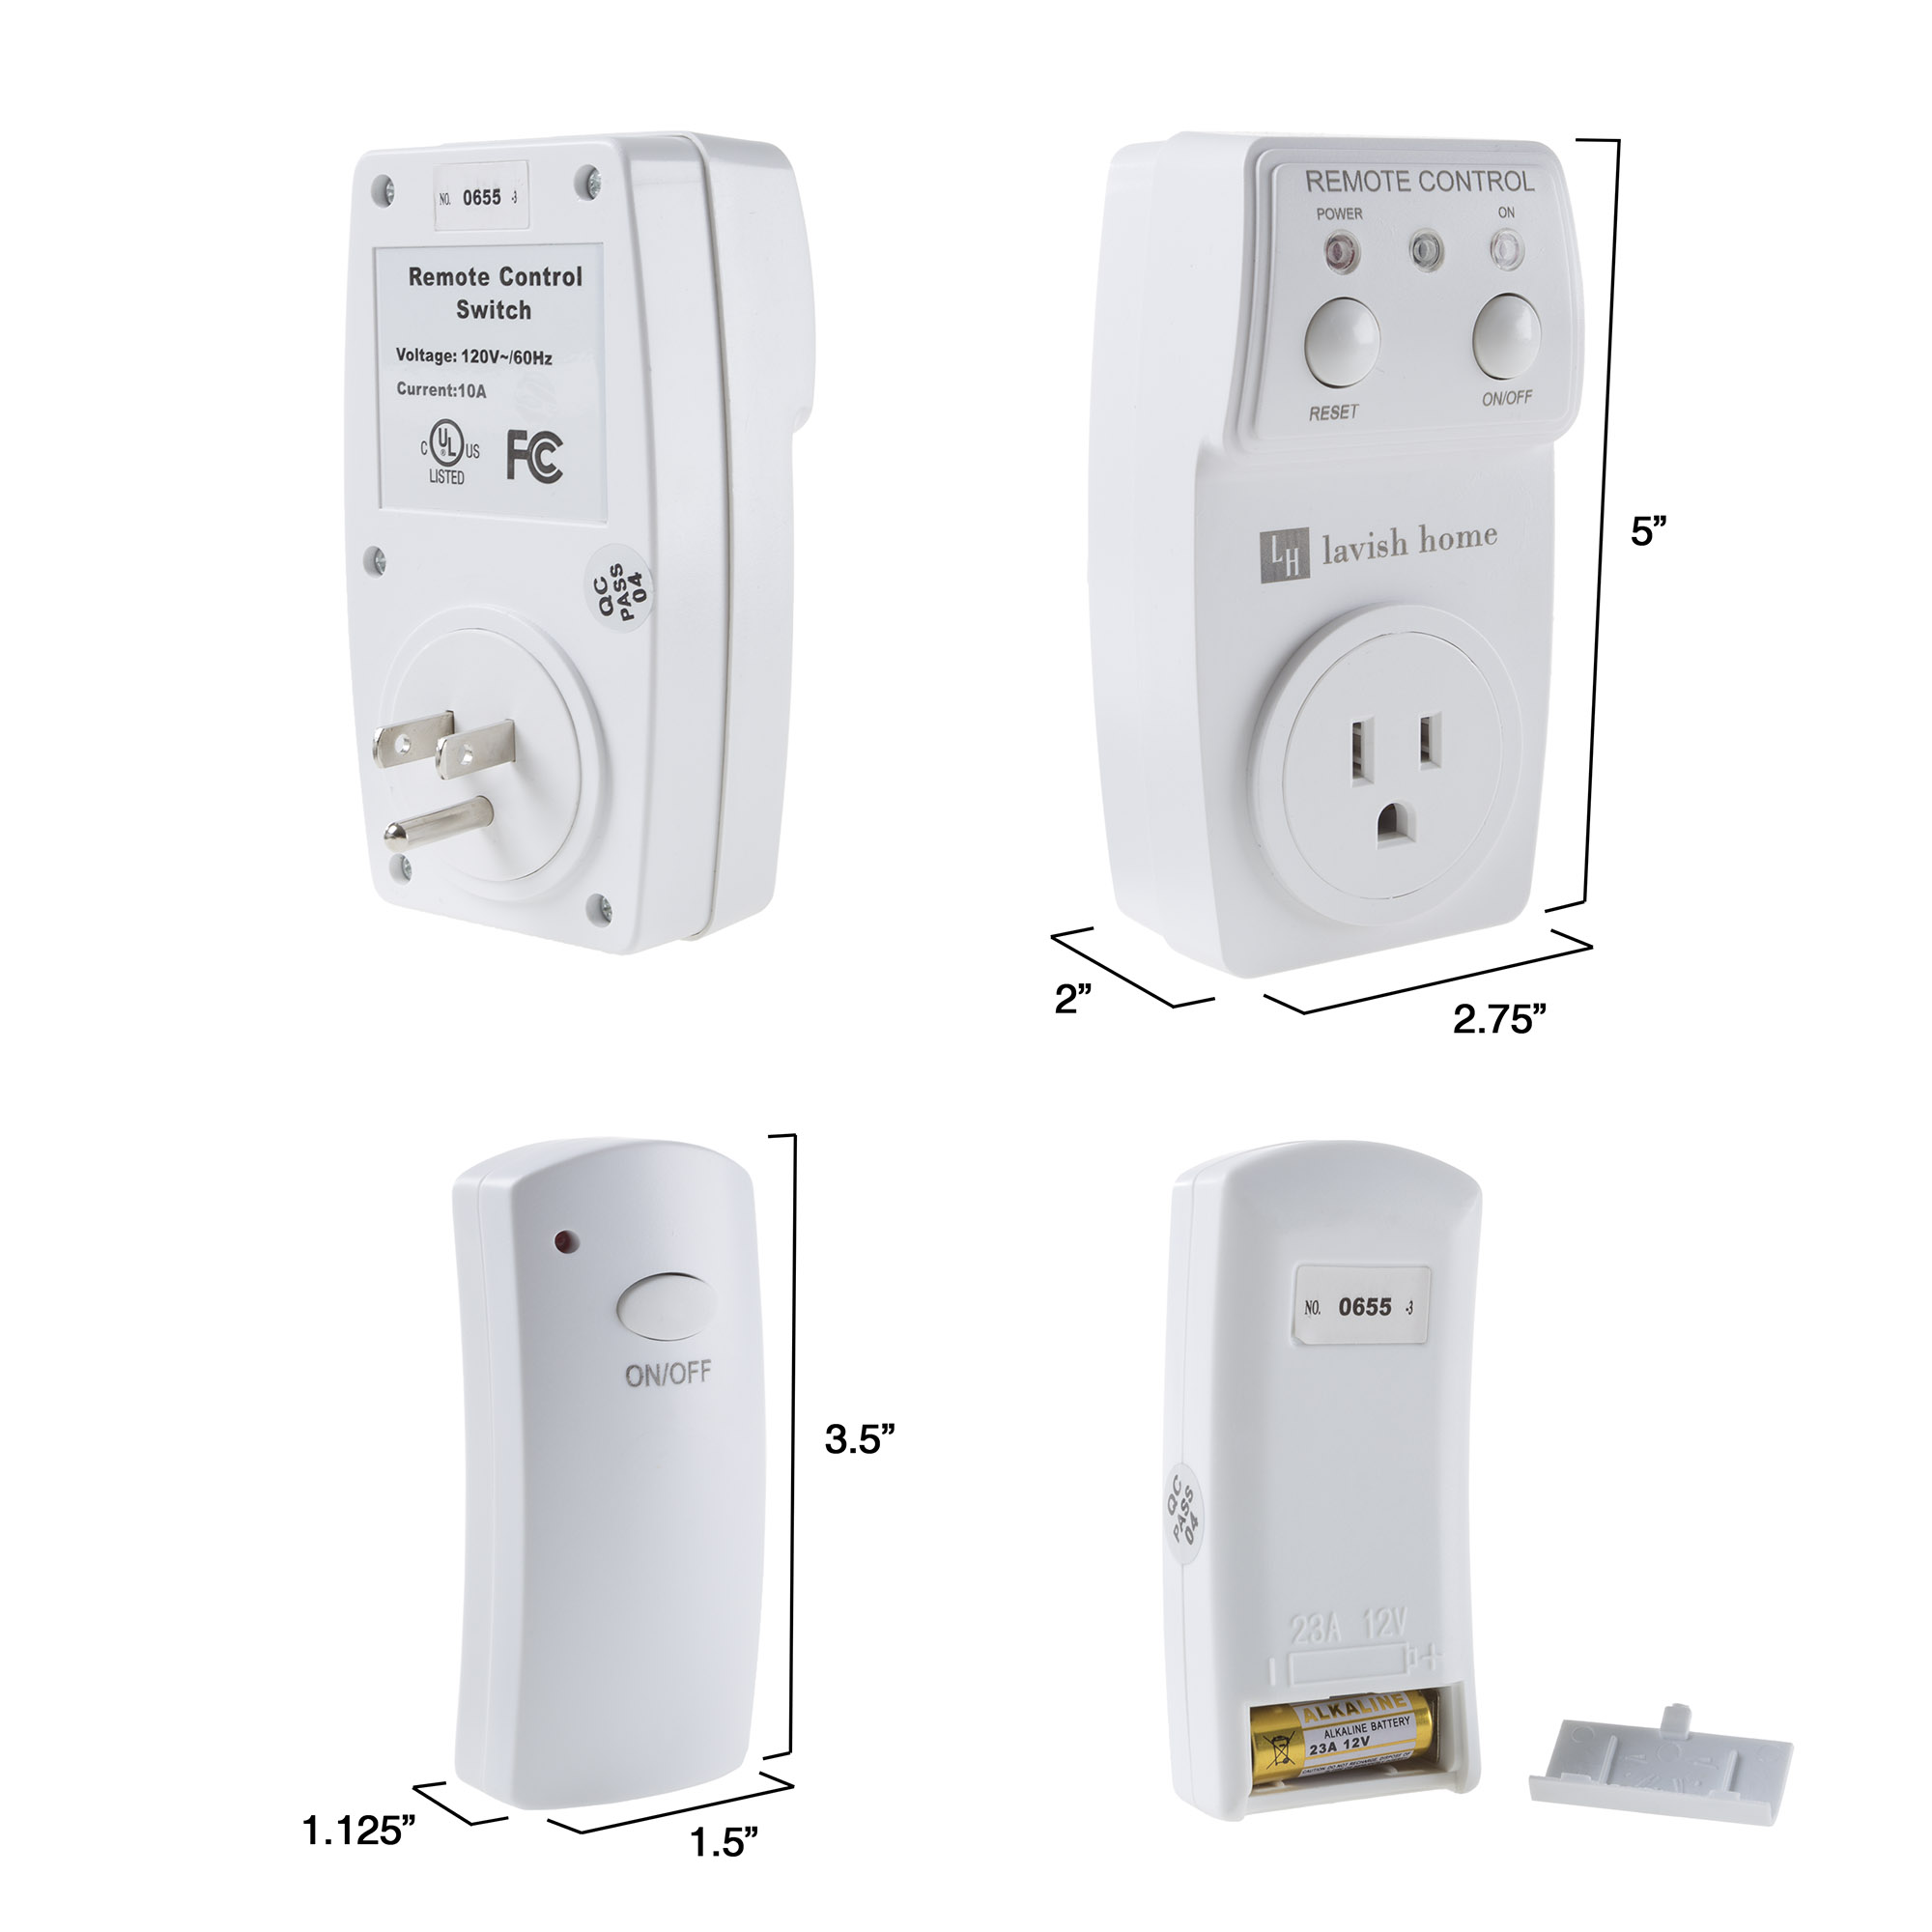 Indoor Wireless Electrical Outlet Plug With Programmable Remote Control For Home Appliances, Lamps, Lighting and Electrical Equipment By Lavish Home